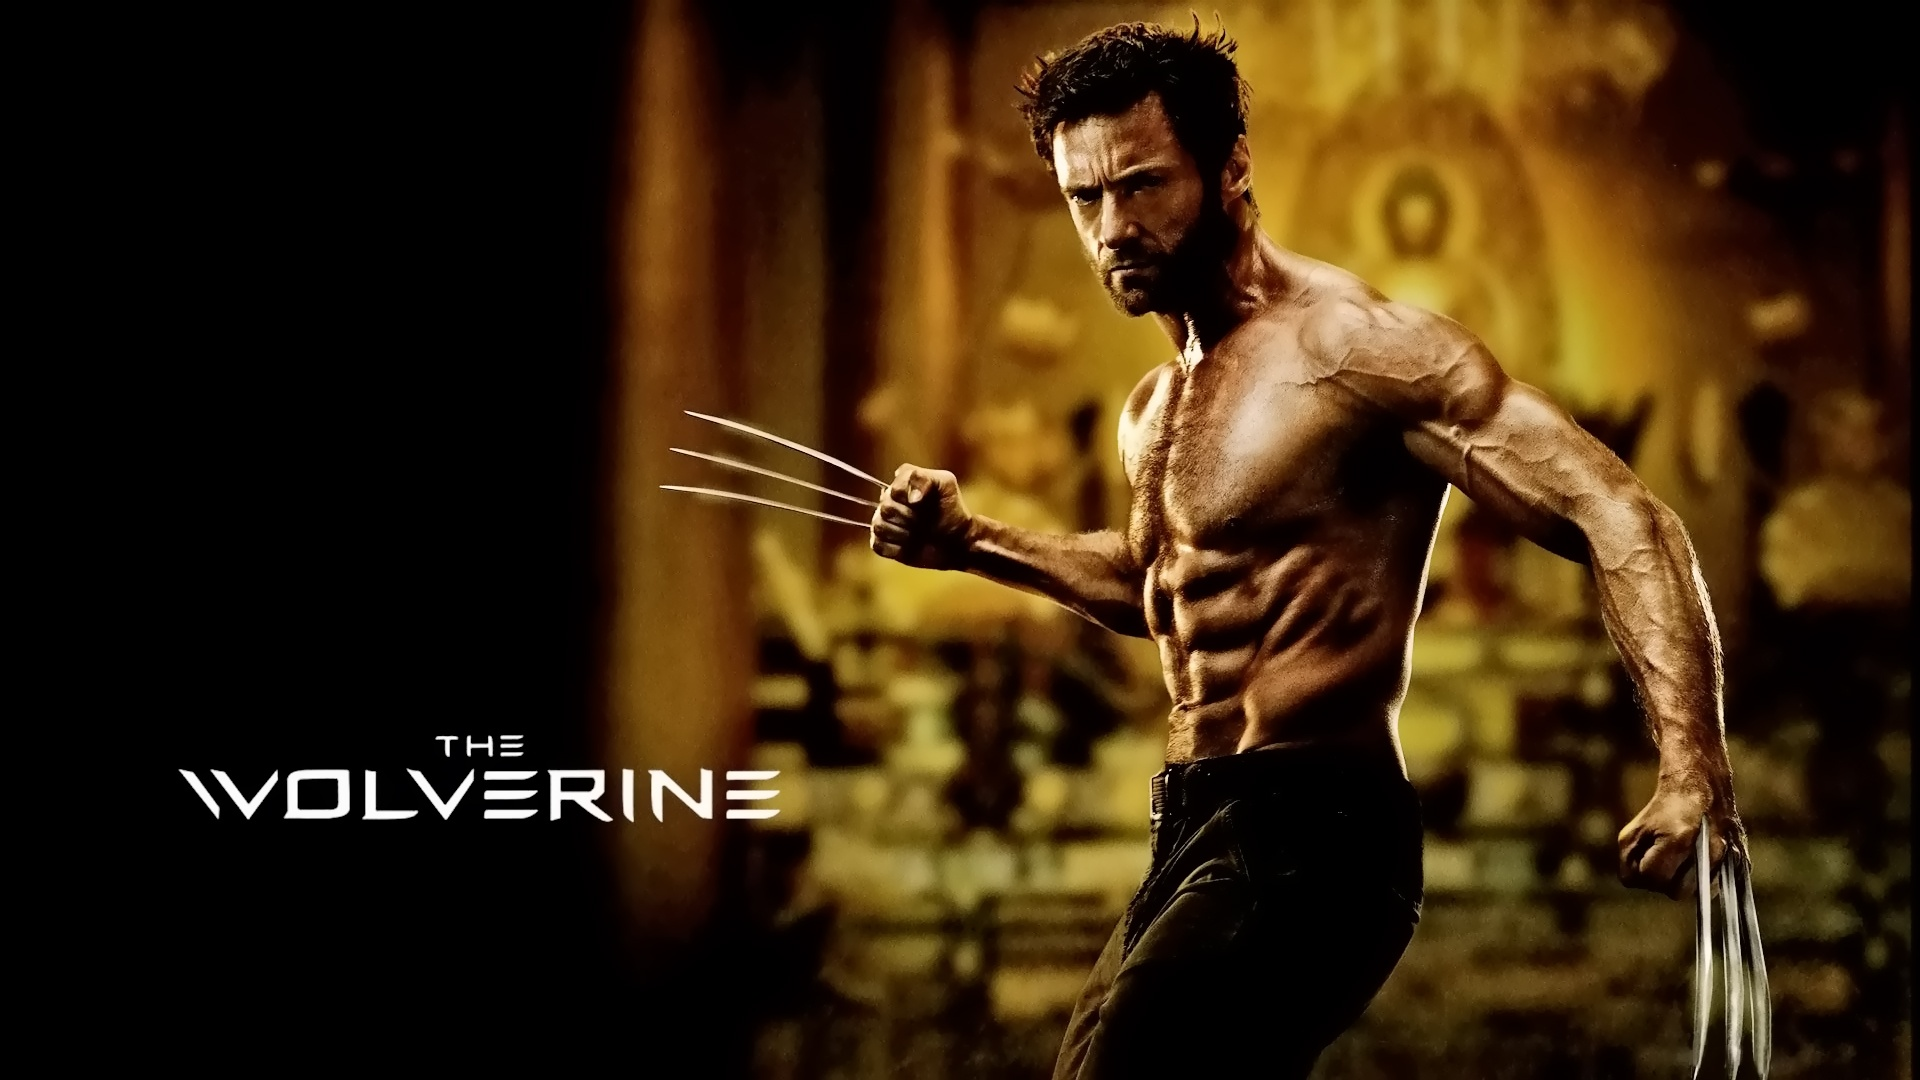 the-wolverine-2013-movie-1920x1080